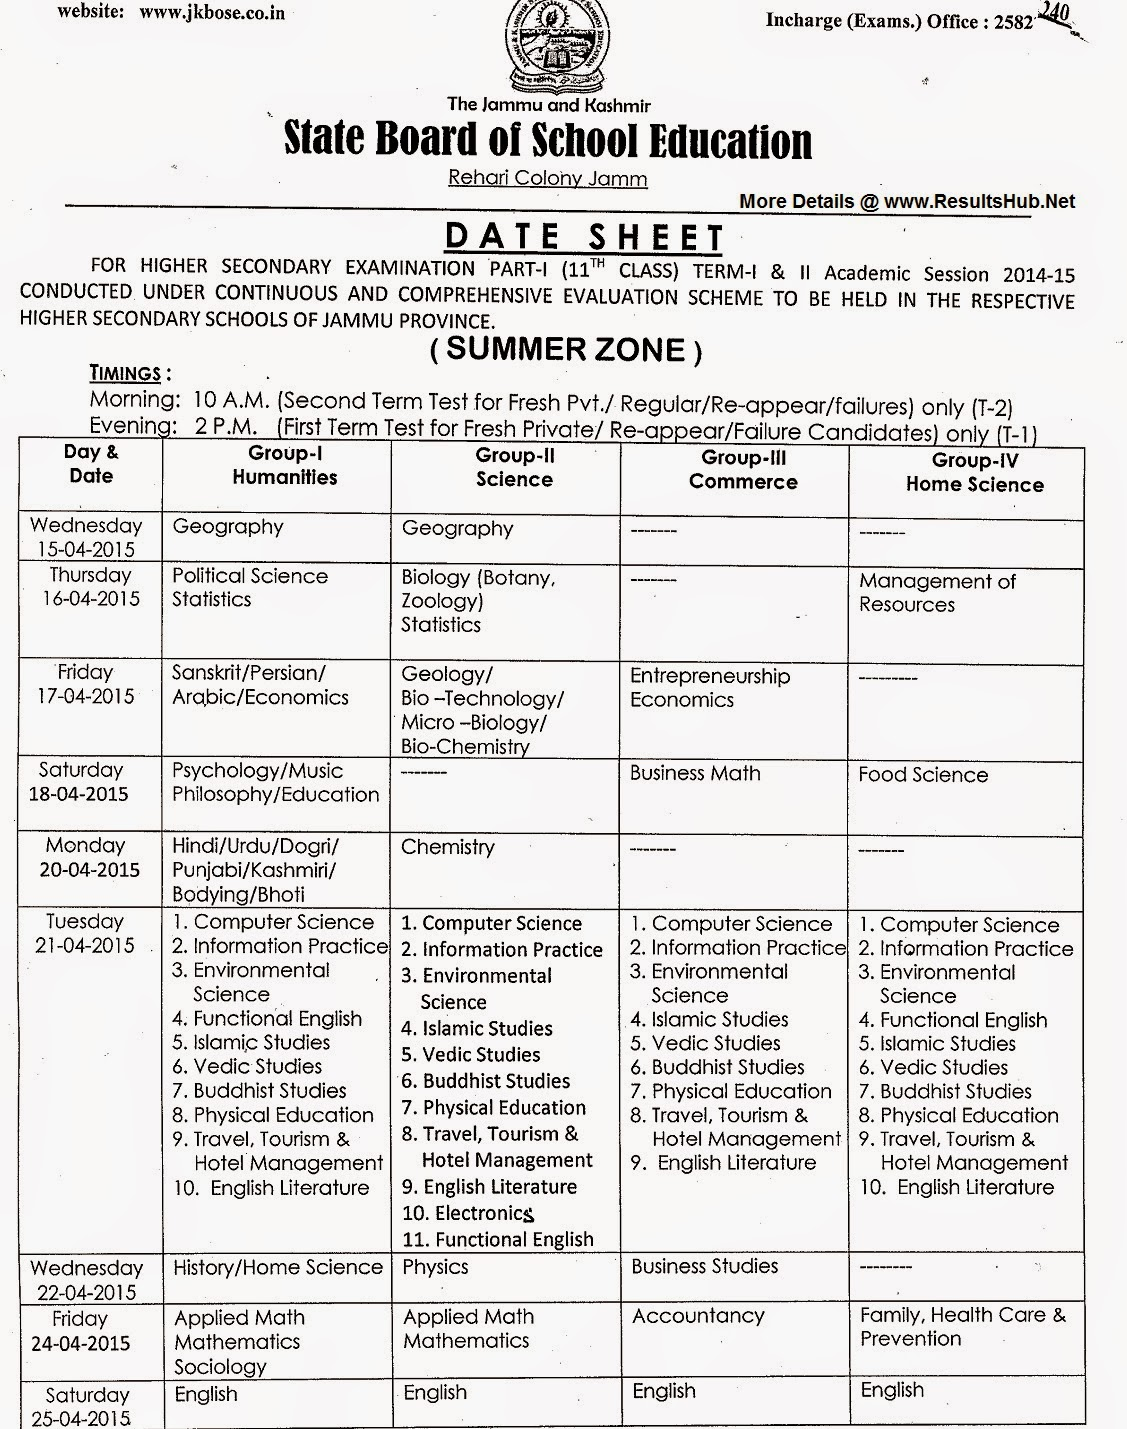 JKBOSE 11th Datesheet Summer 2015